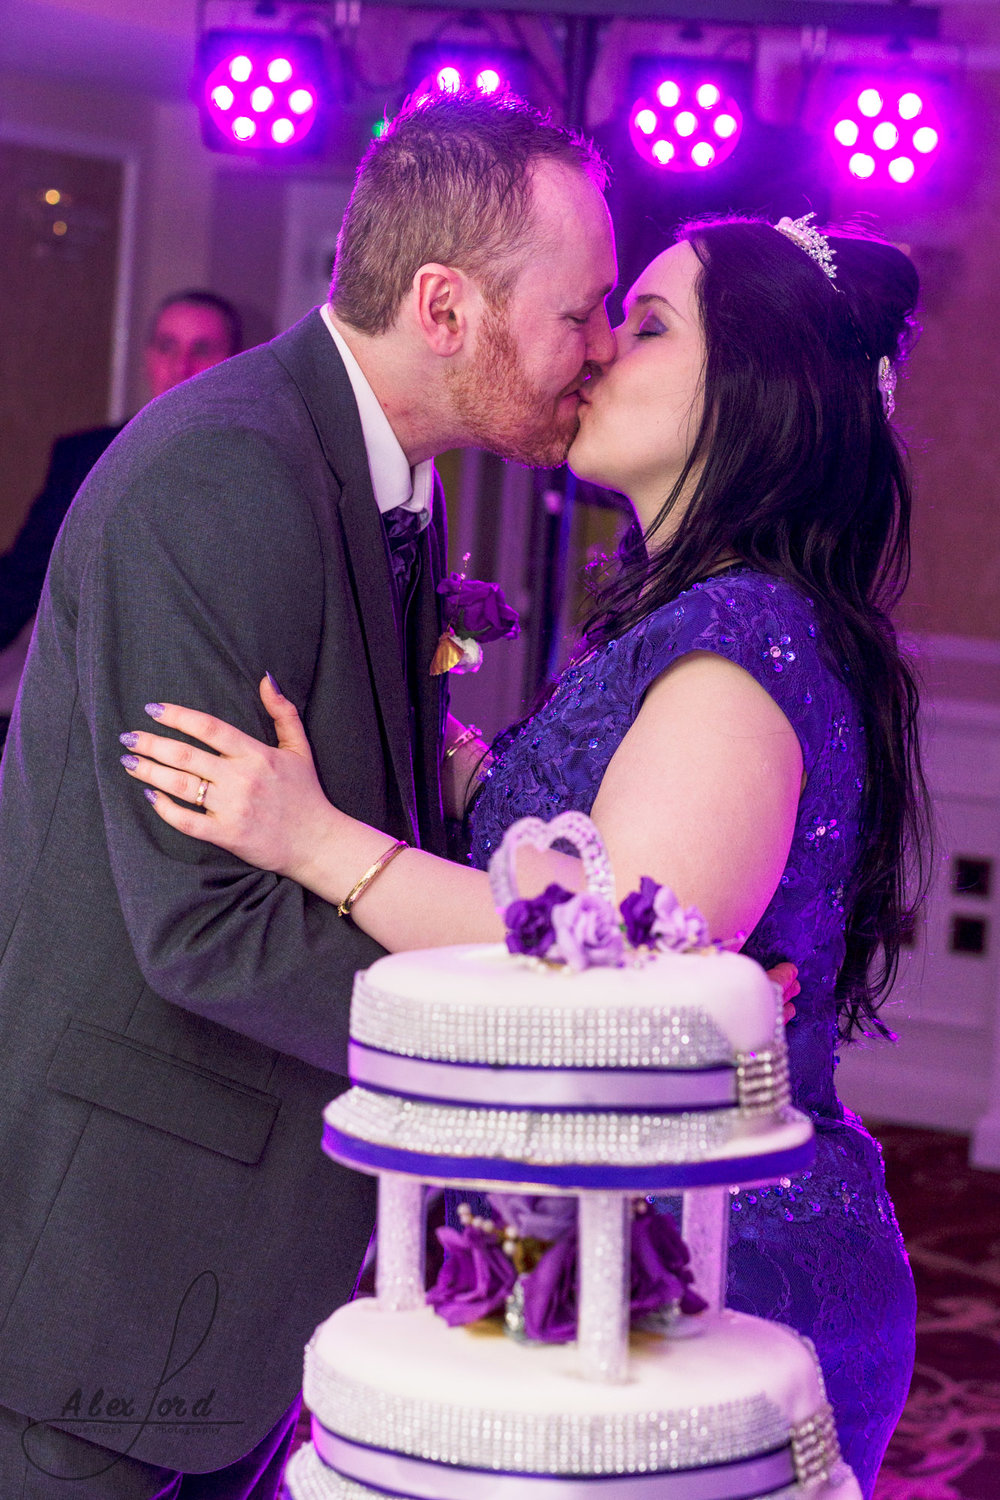 the bride and groom share a kiss just before they cut their wedding cake